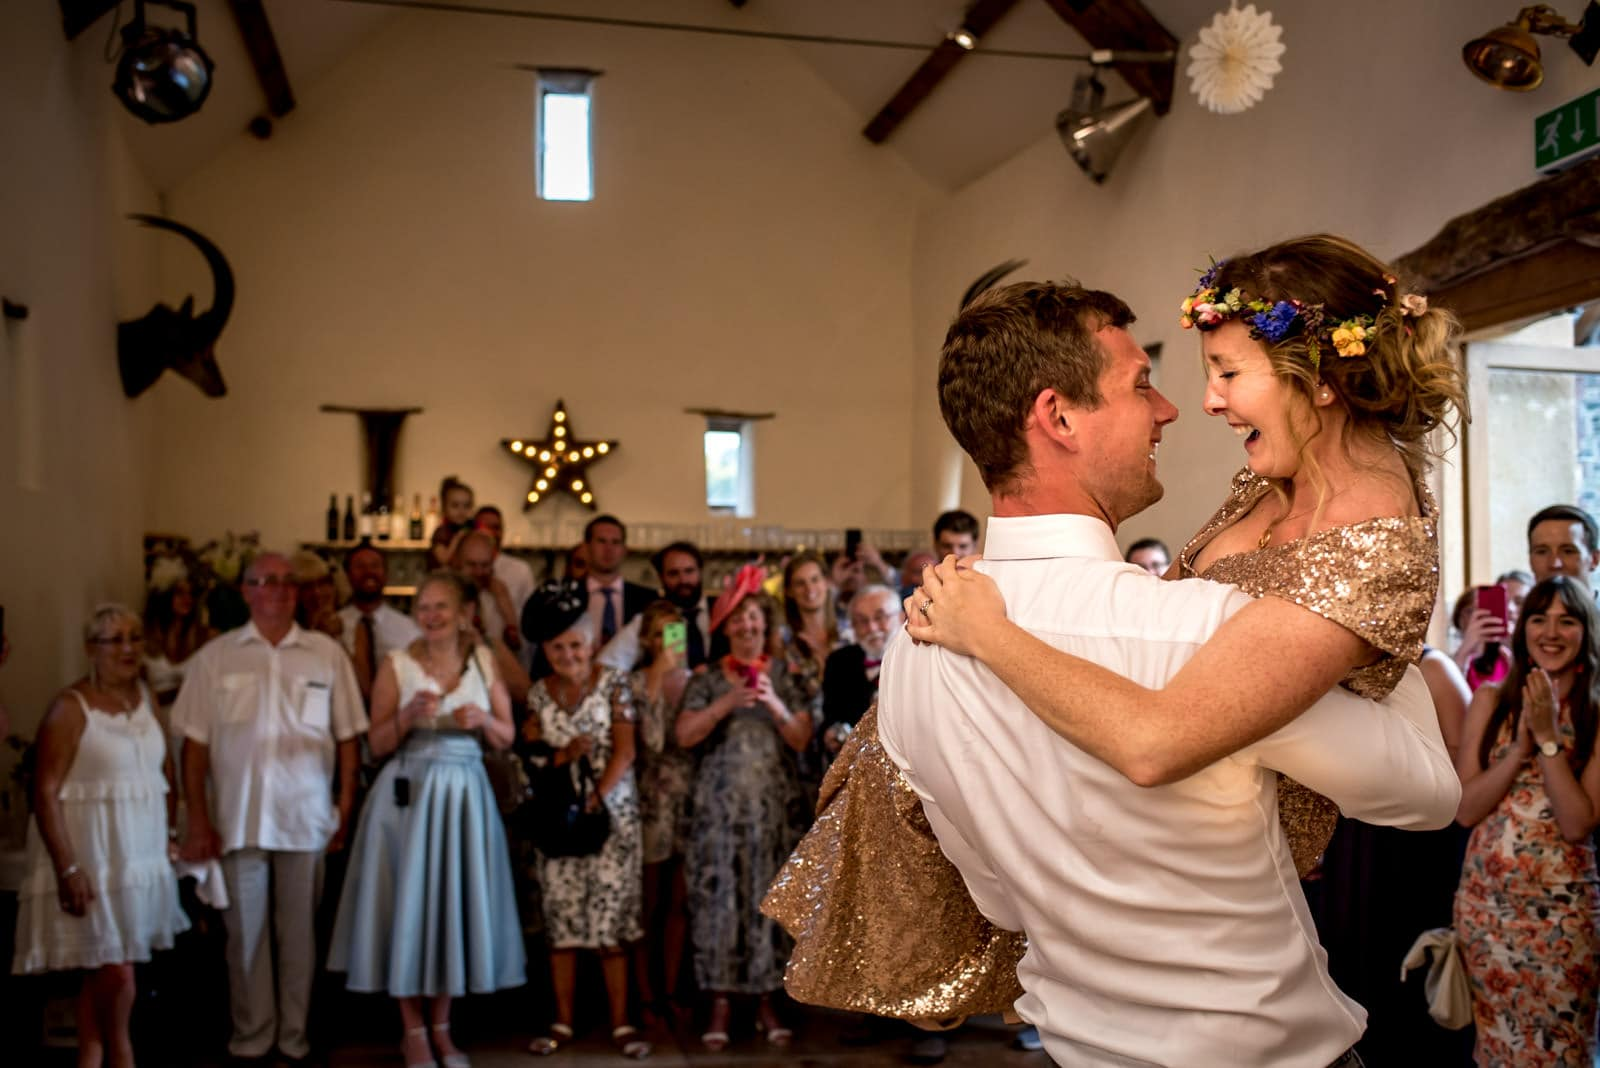 photo of the groom lifting up his bride during the first dance